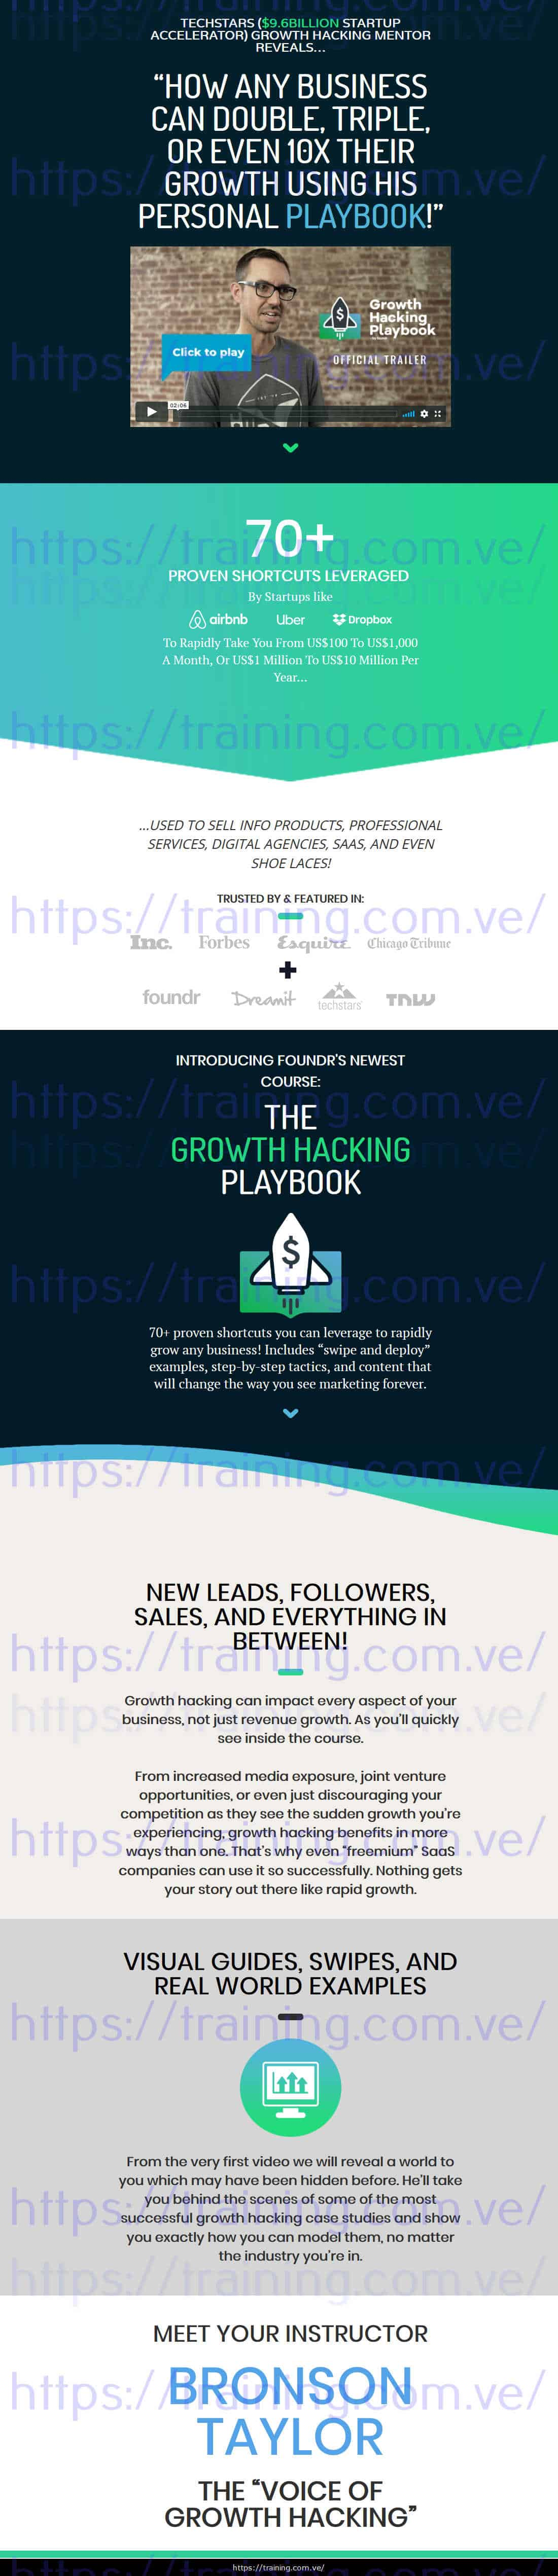 Growth Hacking Playbook by Bronson Taylor Foundr sales page